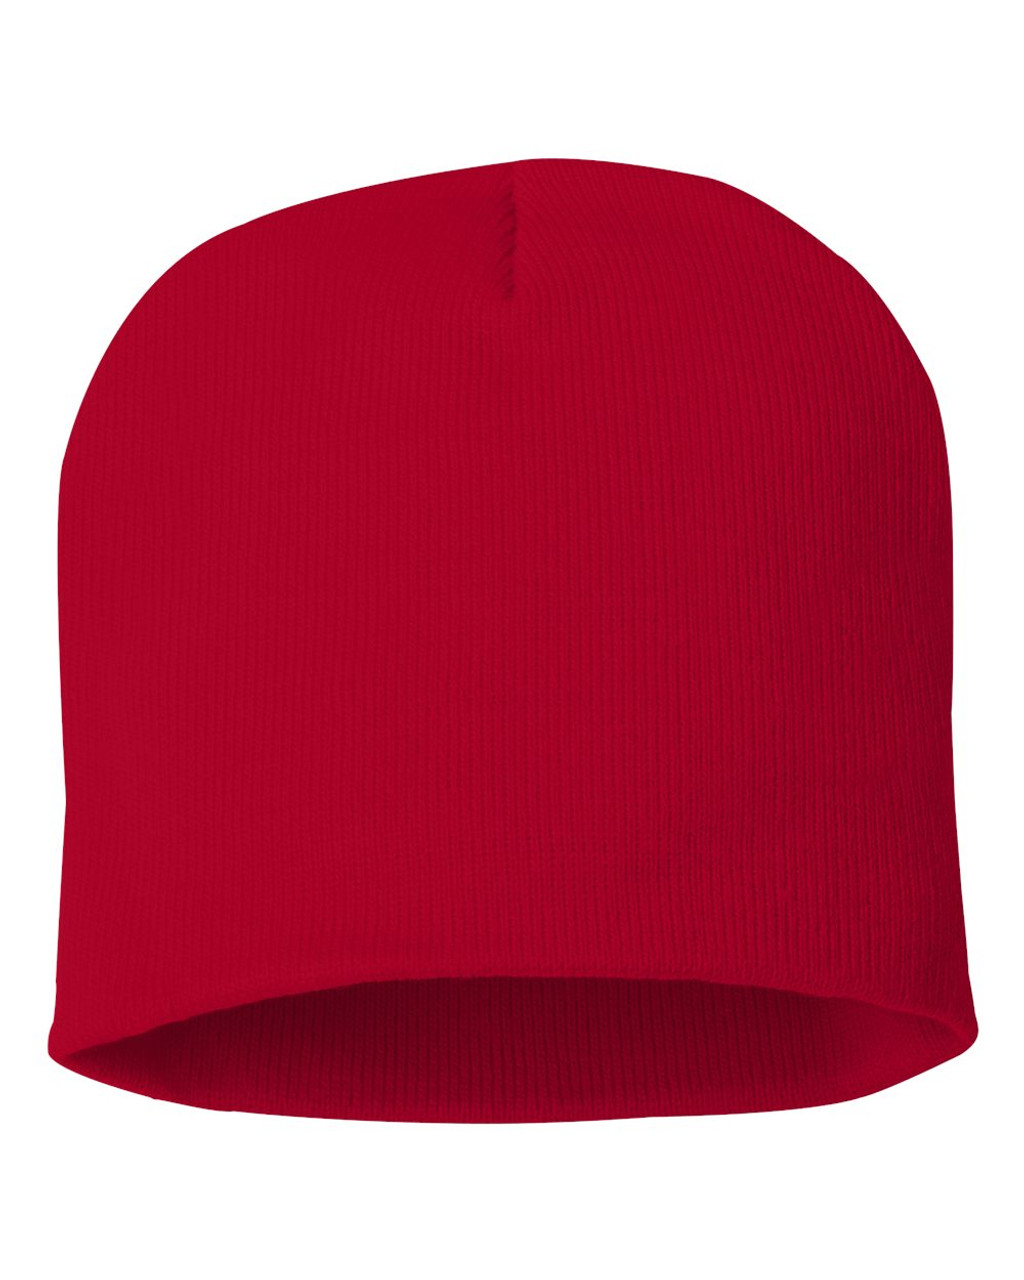 "Red - SP08 Sportsman Acrylic Knit 8"" Toque 